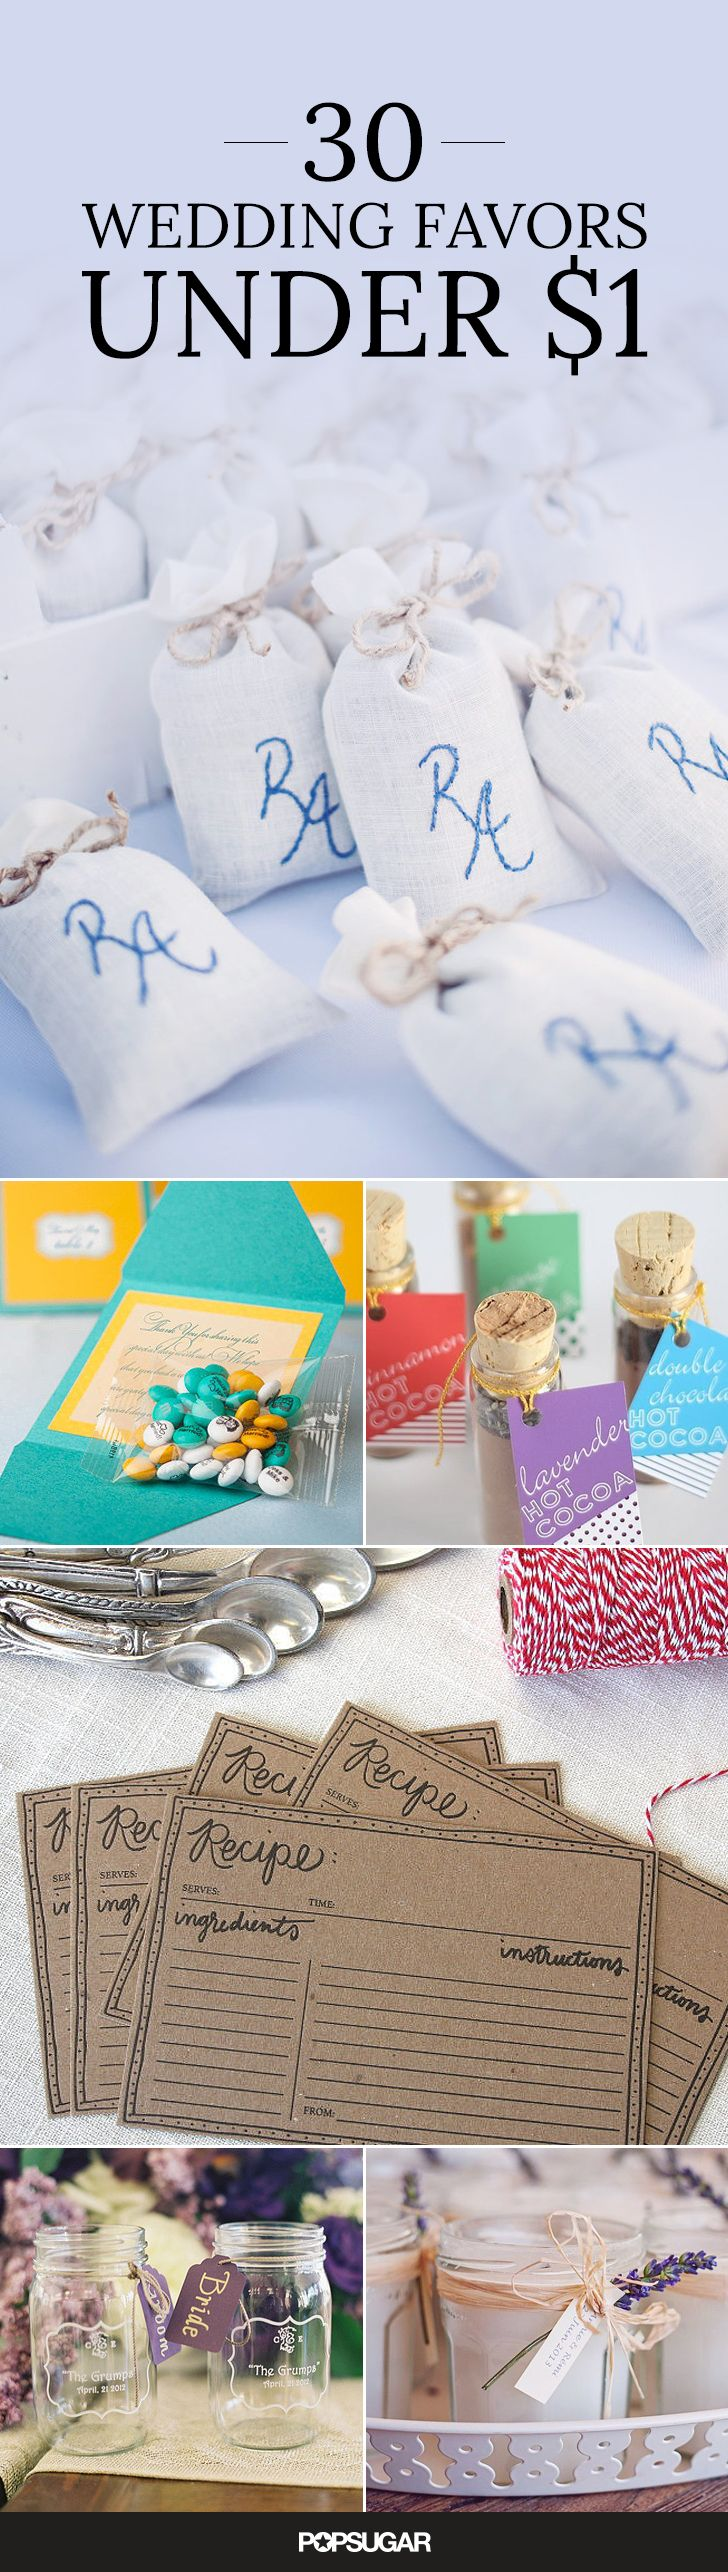 Who says weddings have to break the bank? All of these fun favors cost less than a buck!